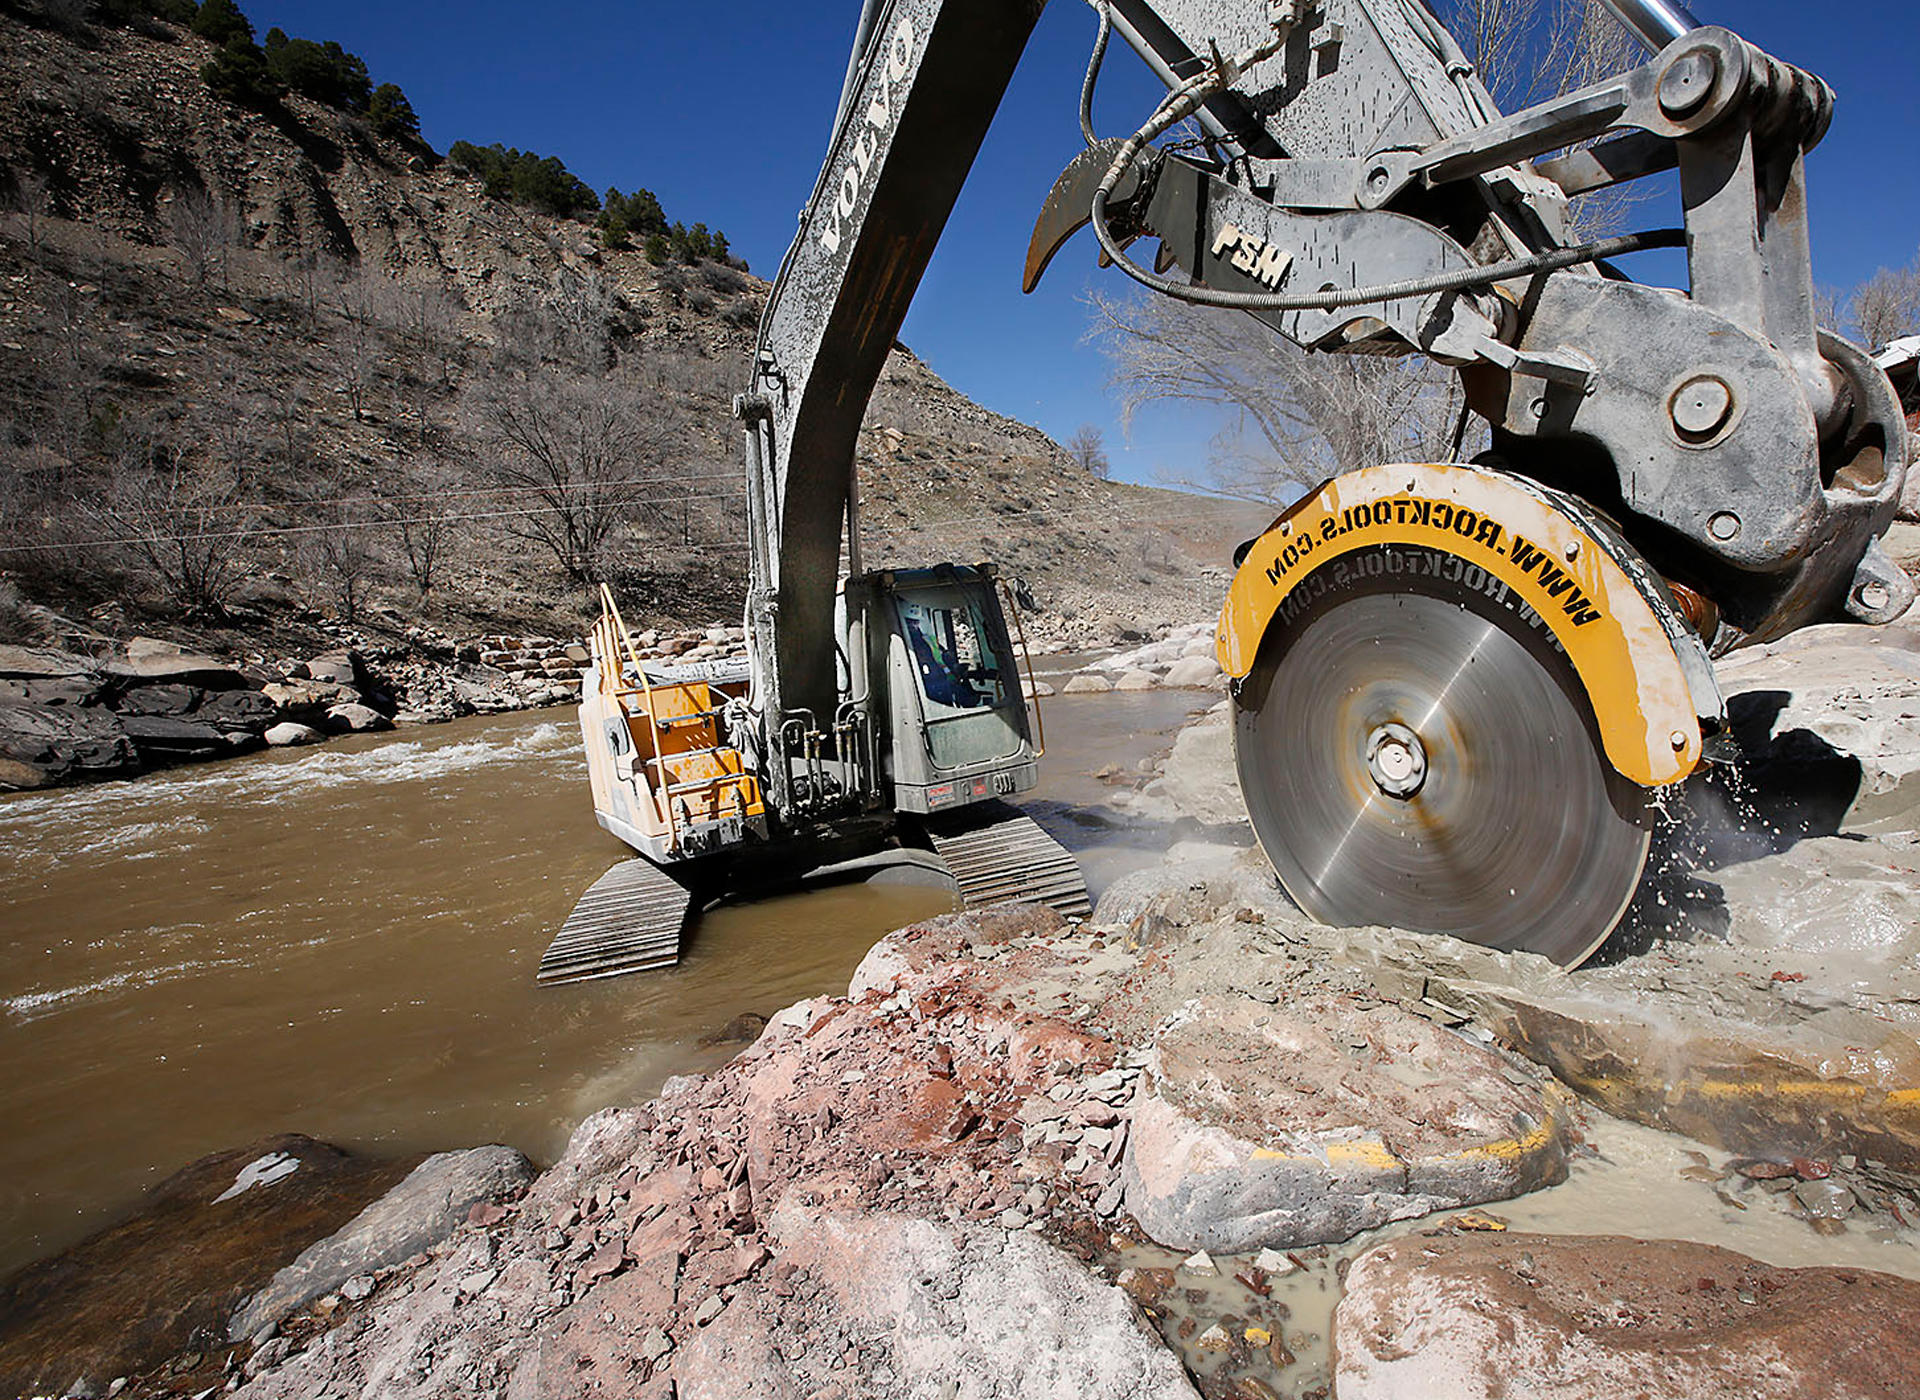 Volvo excavator saws through rock at Durango Whitewater Park in Colorado